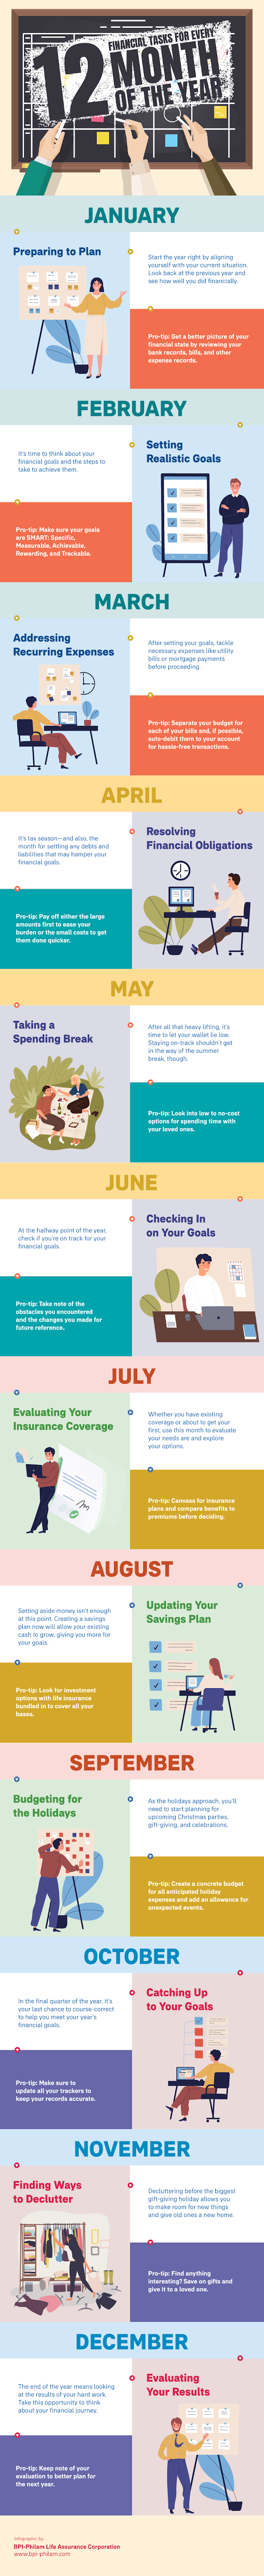 12 Financial Tasks For Every Month Of The Year #infographic #Financial Tasks #Expenses